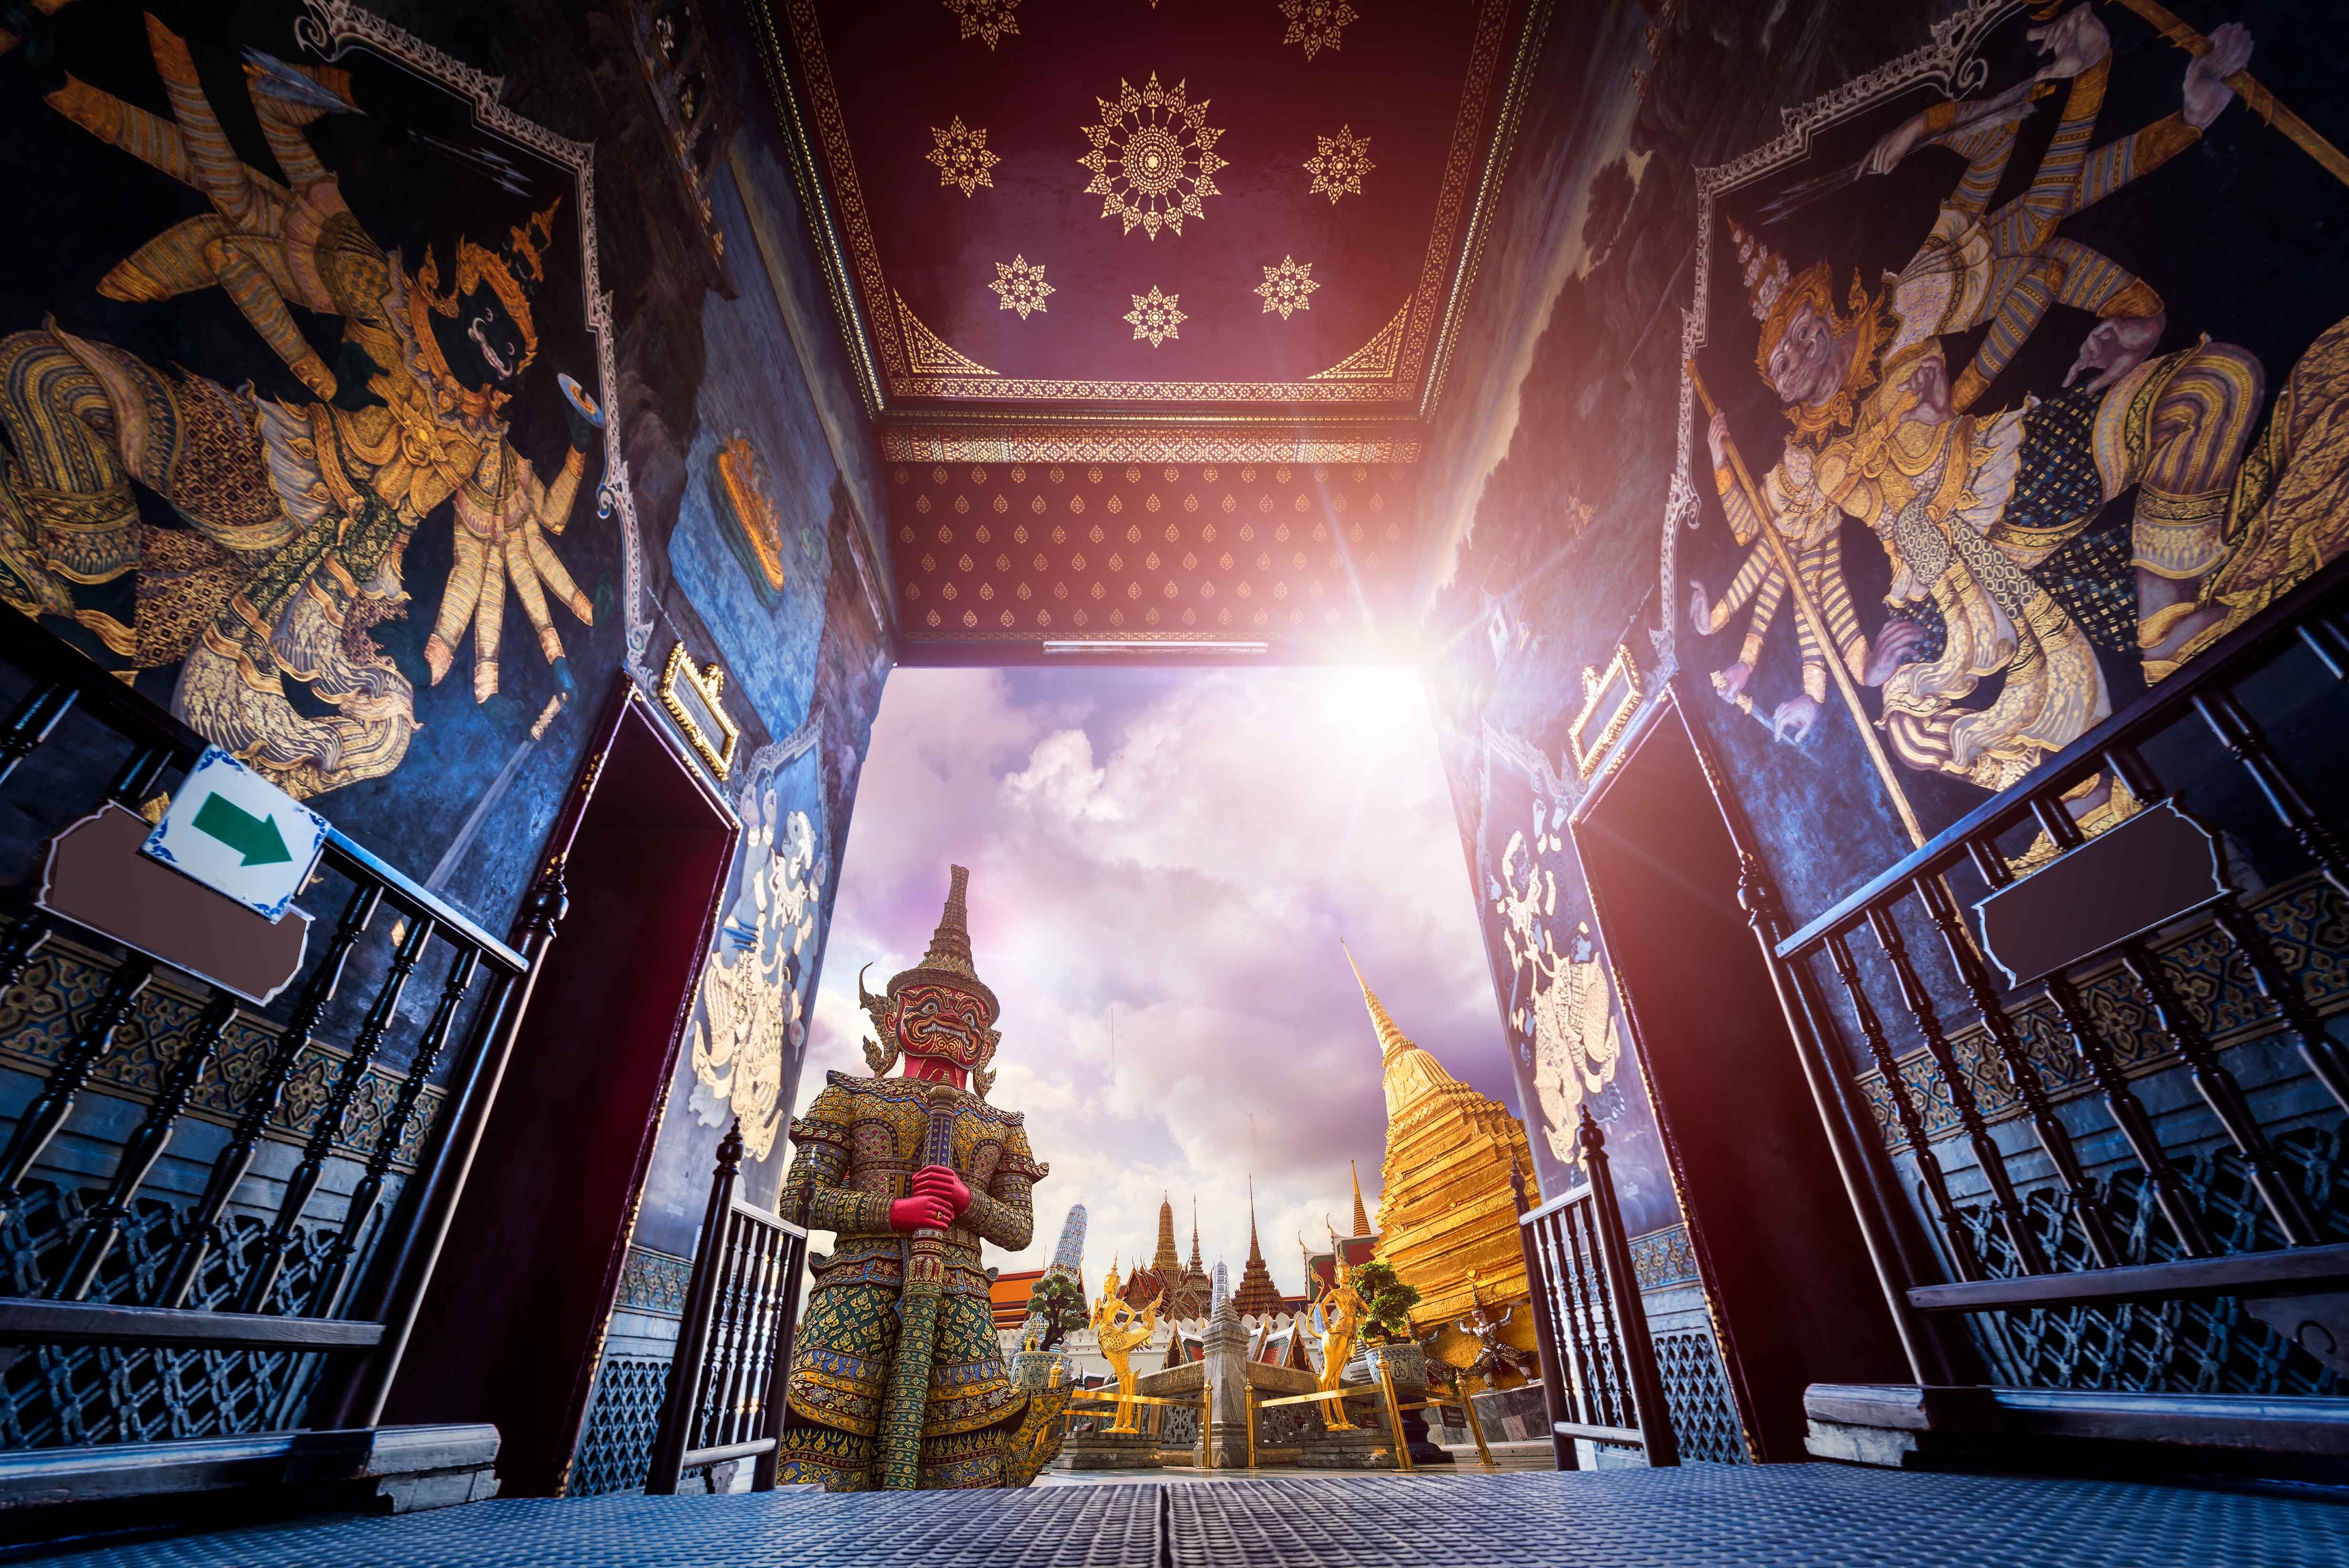 THE MOST BEAUTIFUL TEMPLES IN BANGKOK